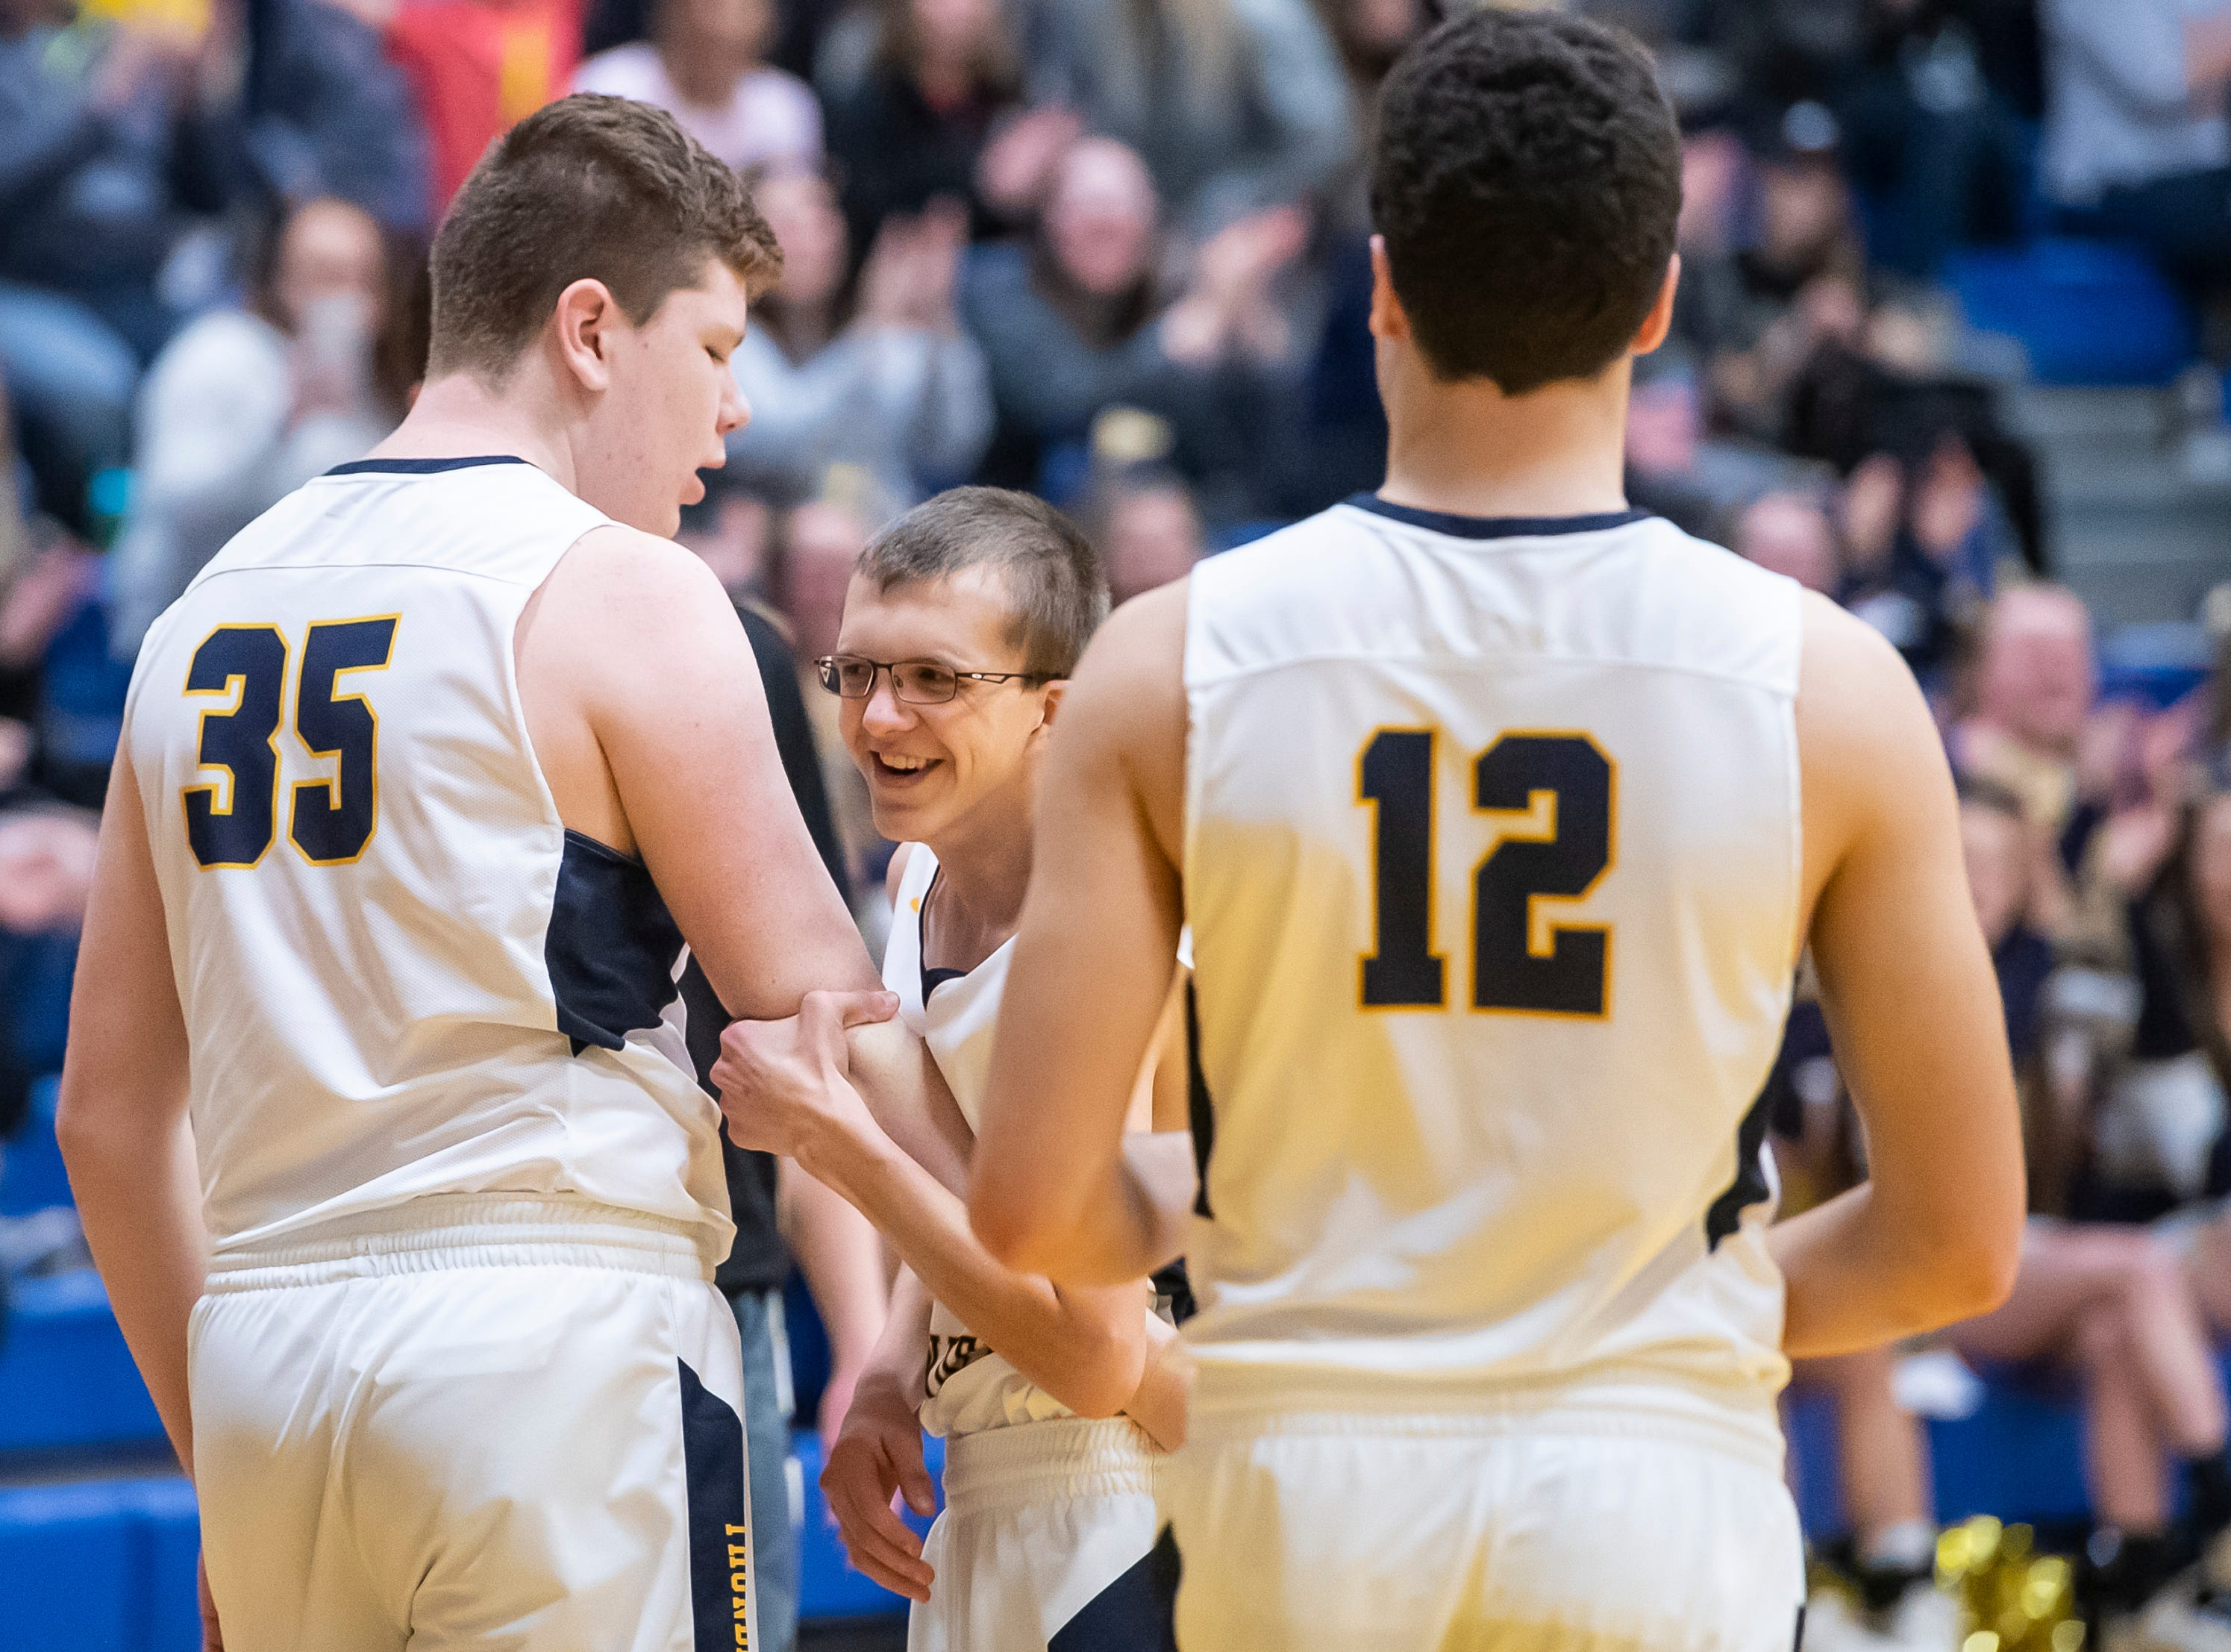 Littlestown's Ben Blankenship, center, is congratulated by his teammates after he  scored the first points of the game against Biglerville Tuesday, February 5, 2019. The Bolts won 54-46 on senior night.